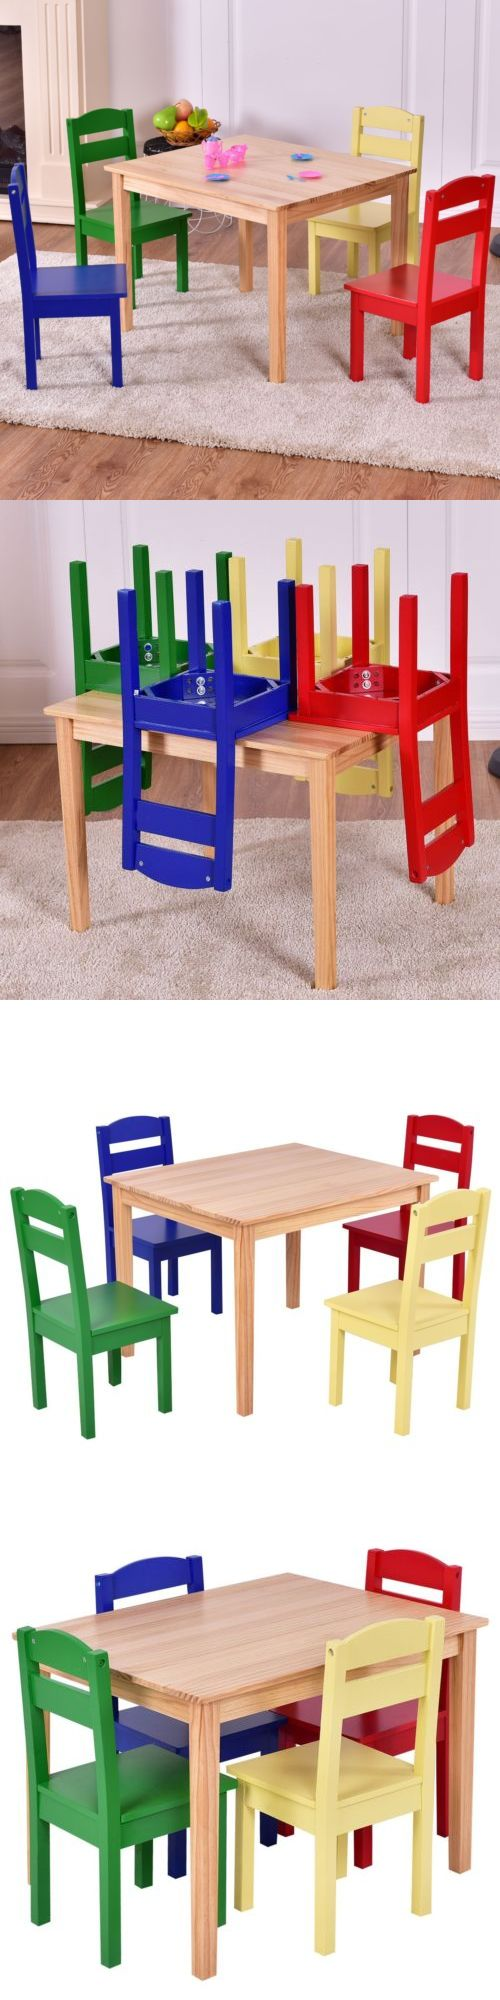 Play Tables and Chairs 66743: Kids 5Pcs Wooden Table And Chair Set Fun Children Learning Activity Furniture Us -> BUY IT NOW ONLY: $87.99 on eBay!